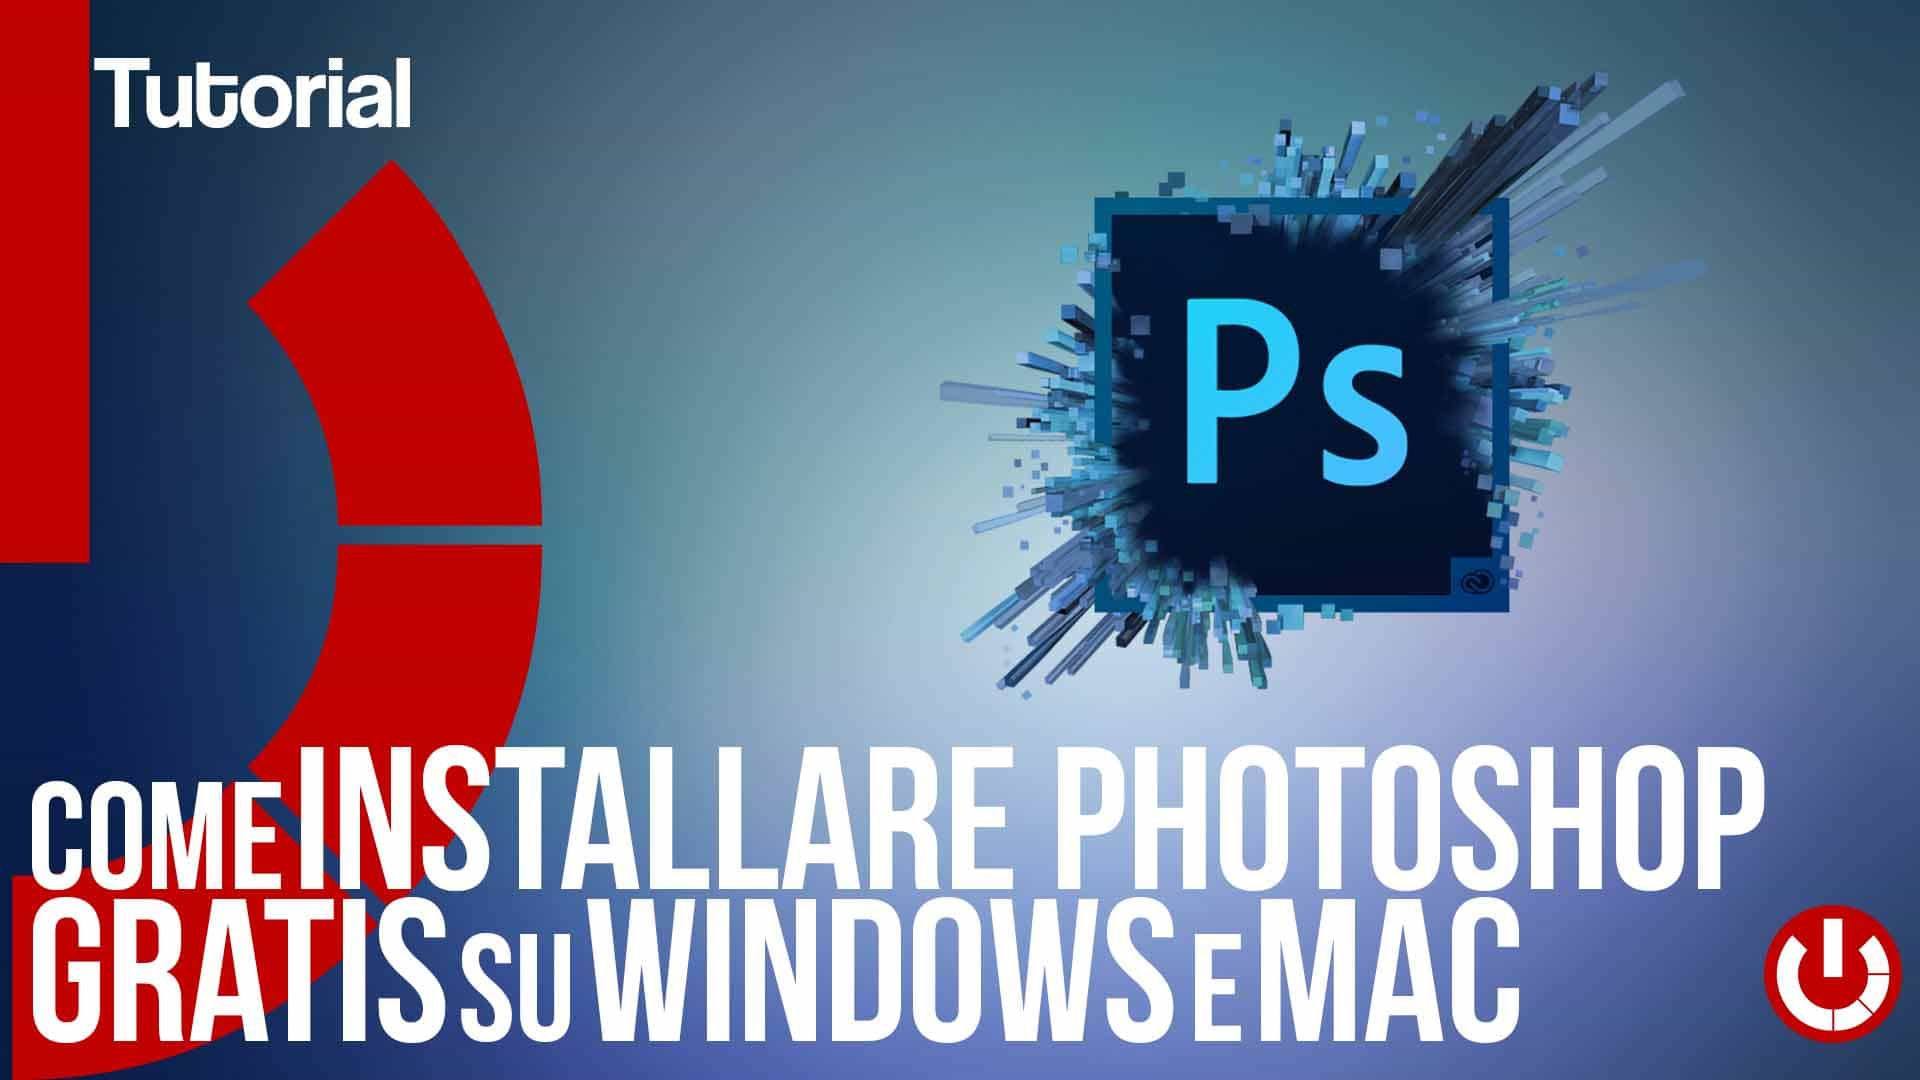 installare photoshop 2018 gratis su windows e mac crack photoshop